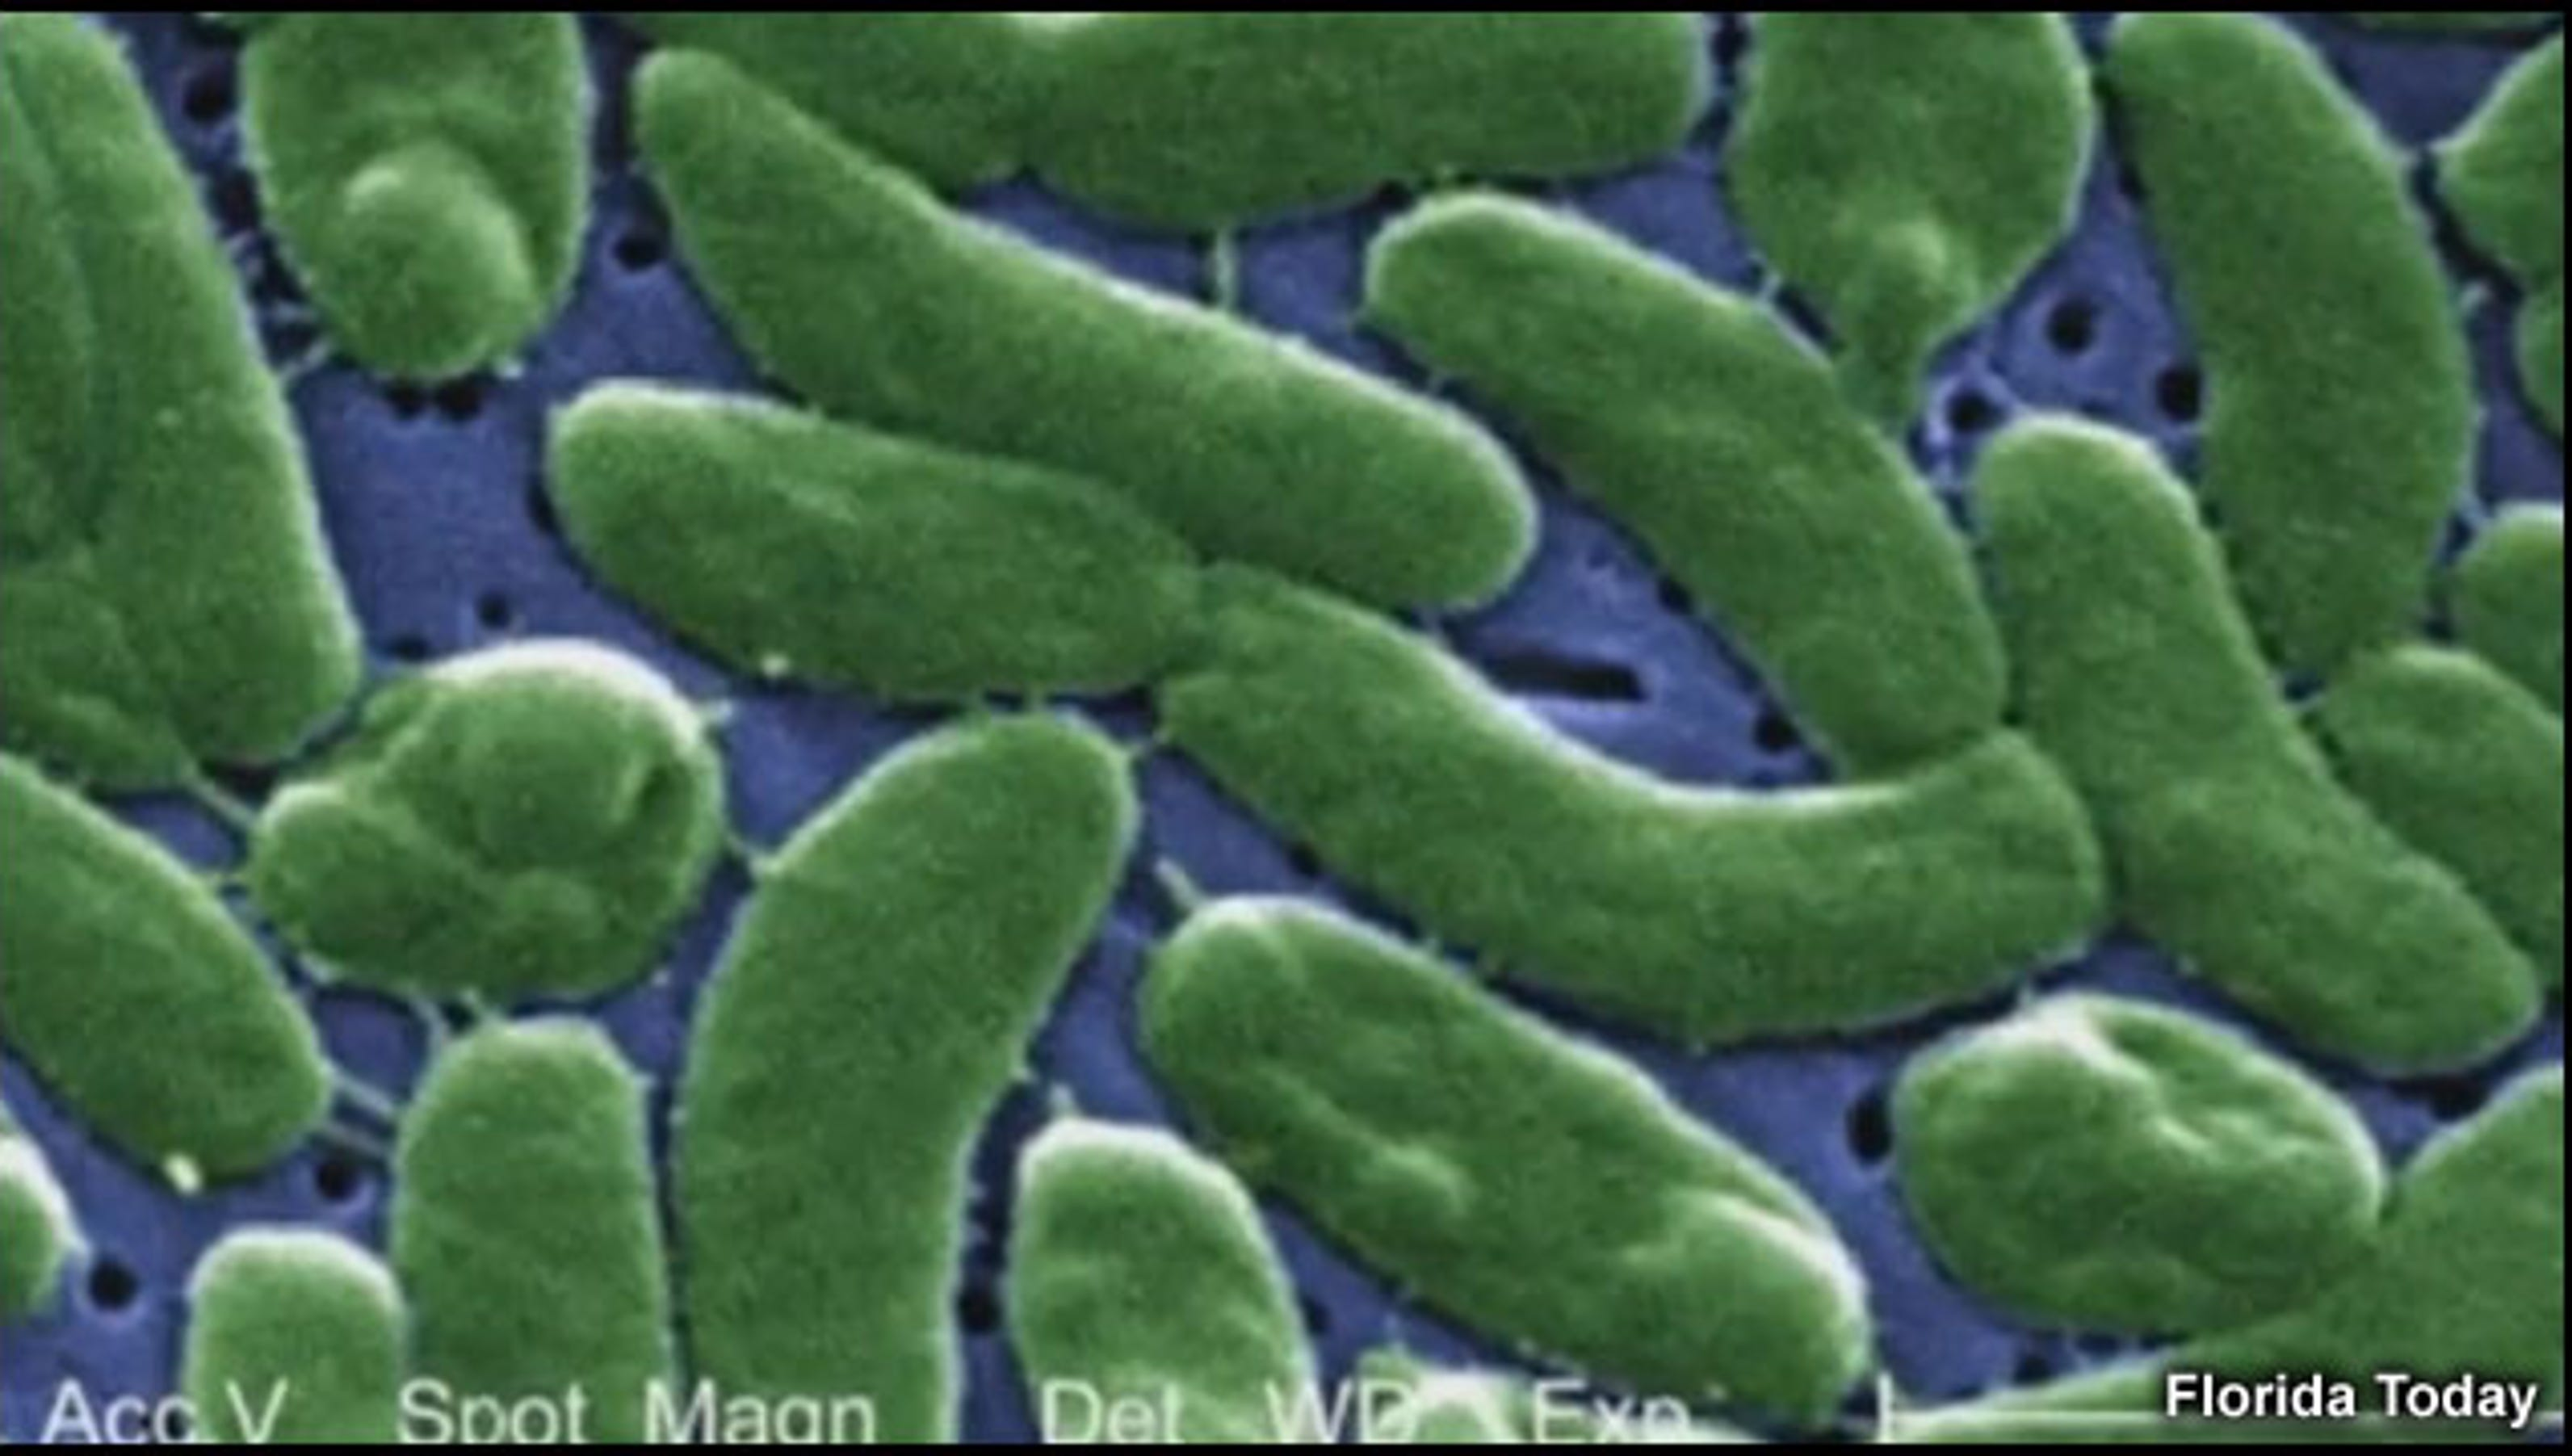 flesh eating bacteria essay I was rushed to the hospital, where doctors eventually diagnosed me with necrotizing fasciitis—also known as flesh-eating bacteria—a bacterial infection that was destroying my tissue the .